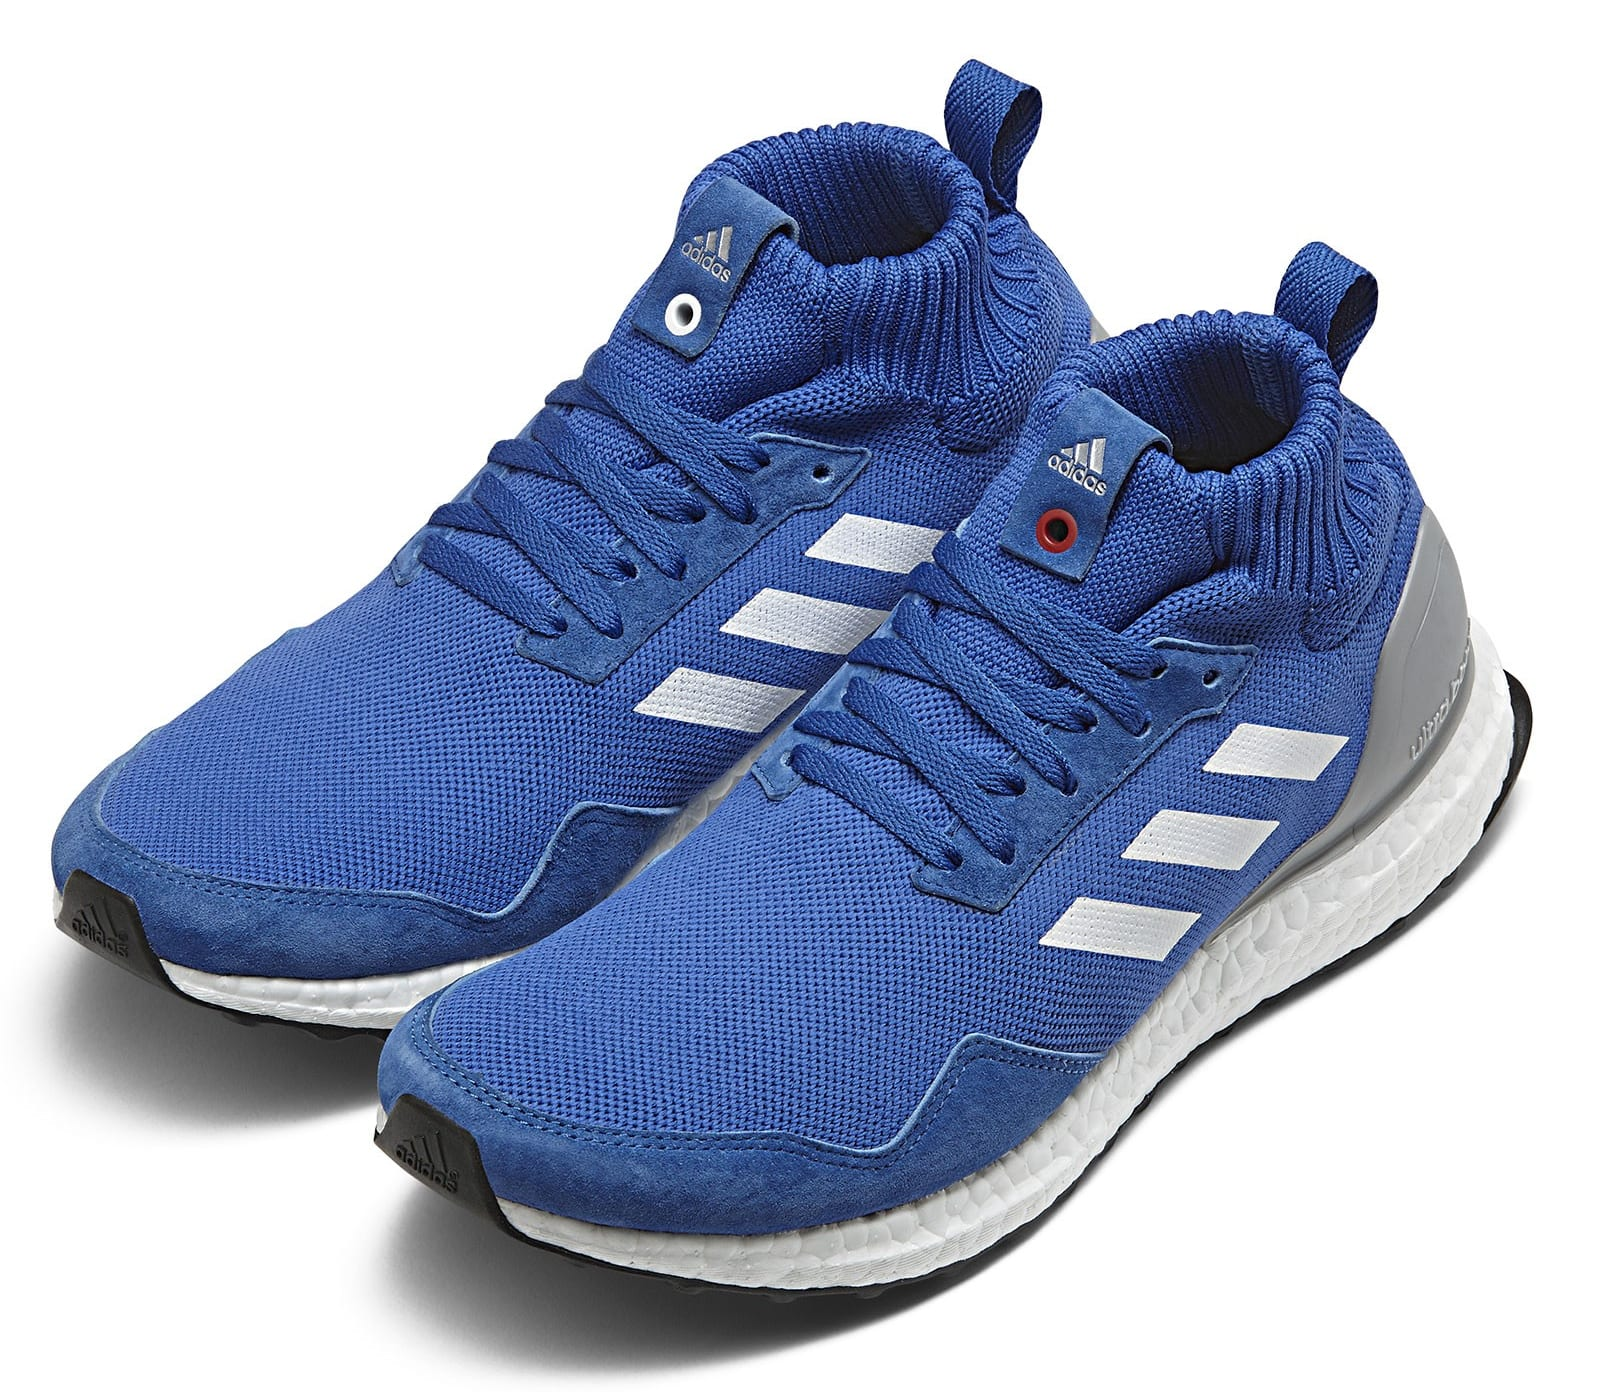 64351e3edfc8 Adidas Consortium  Run Thru Time  Pack - Release Date Roundup  The ...